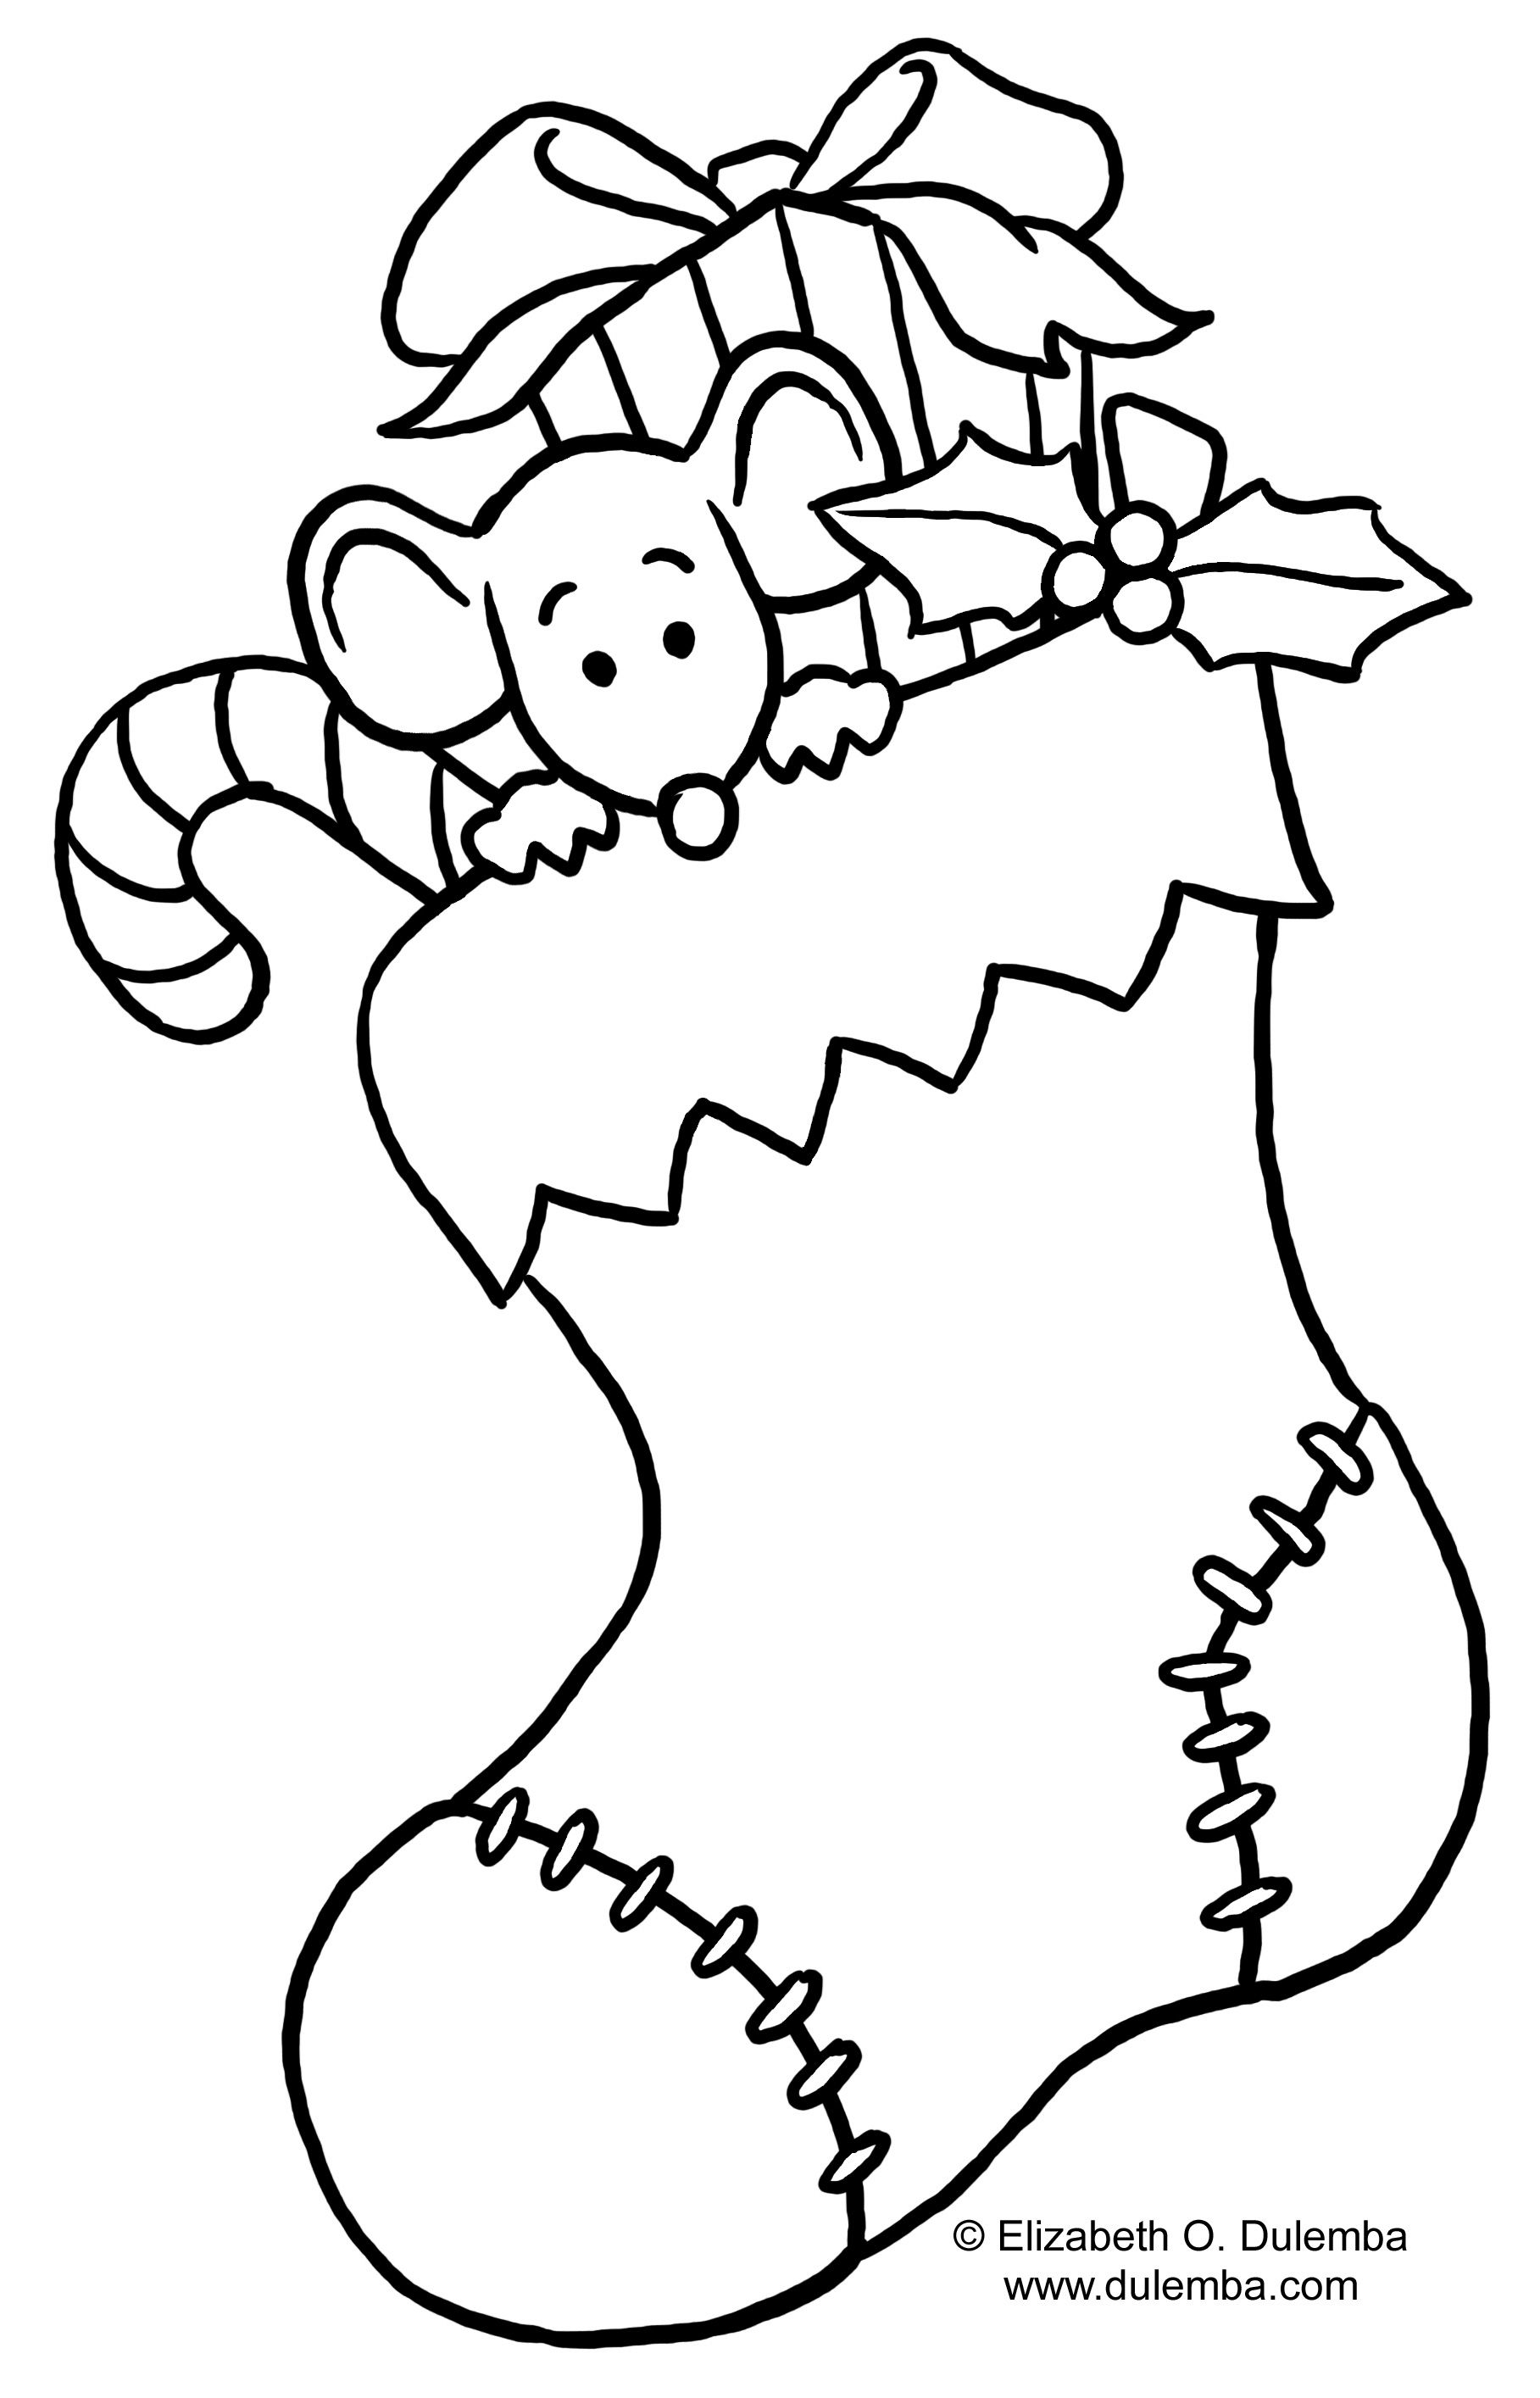 Christmas Coloring Pages Large With Free Images And Kids Gamz Me